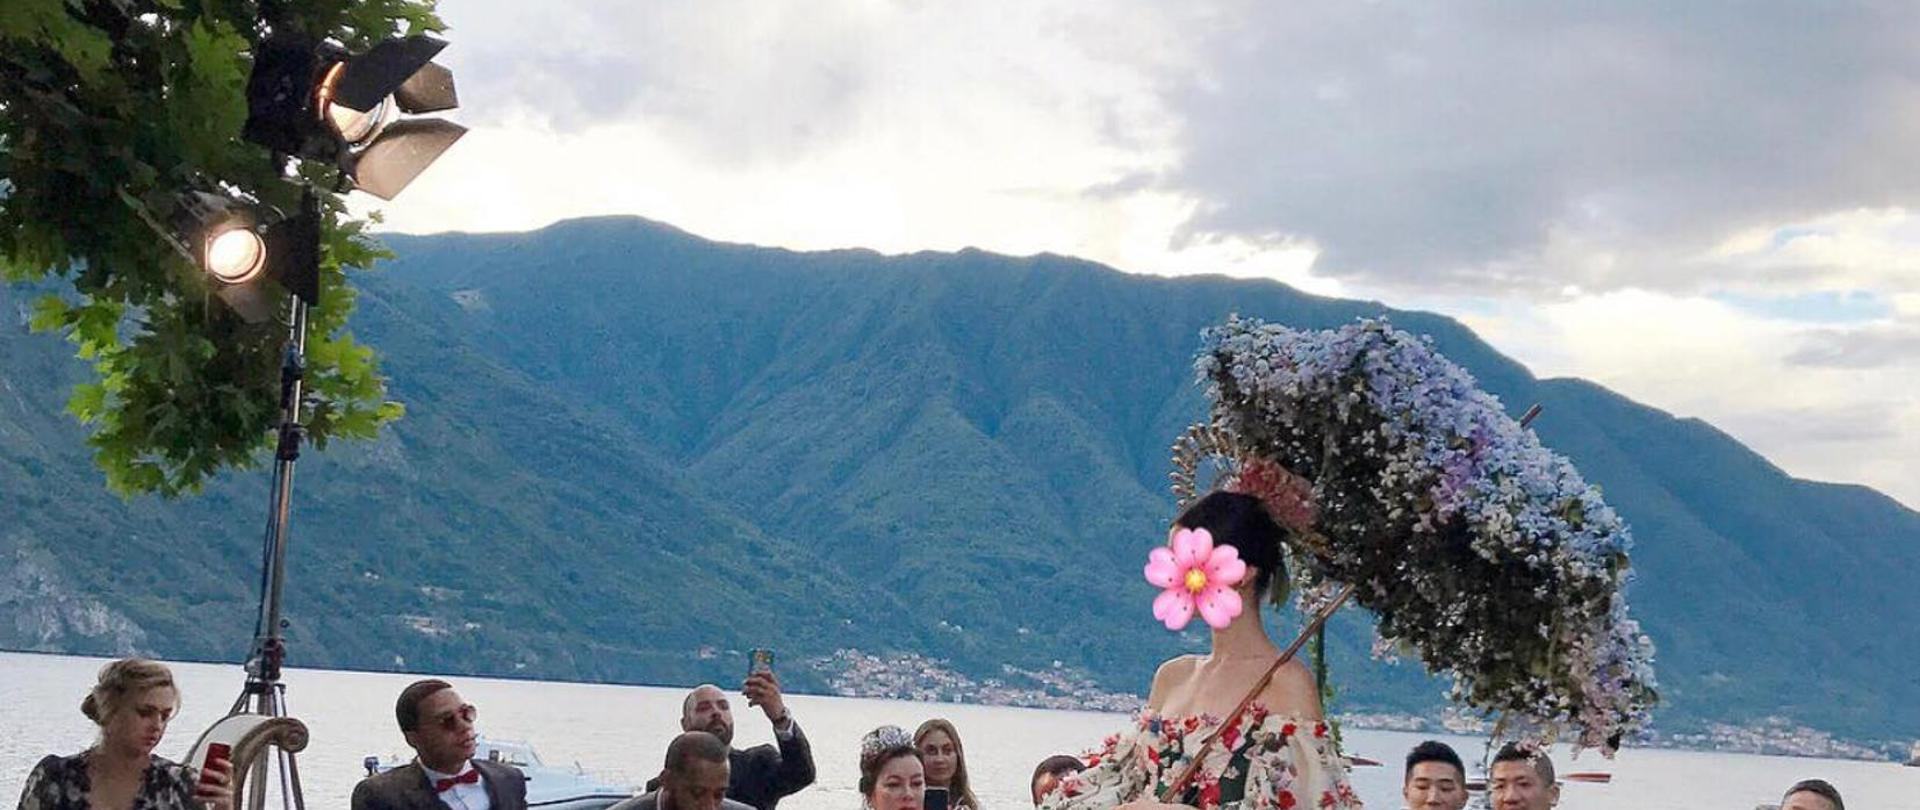 DOLCE GABBANA  FASHION WEEK AT LAKE COMO.jpg